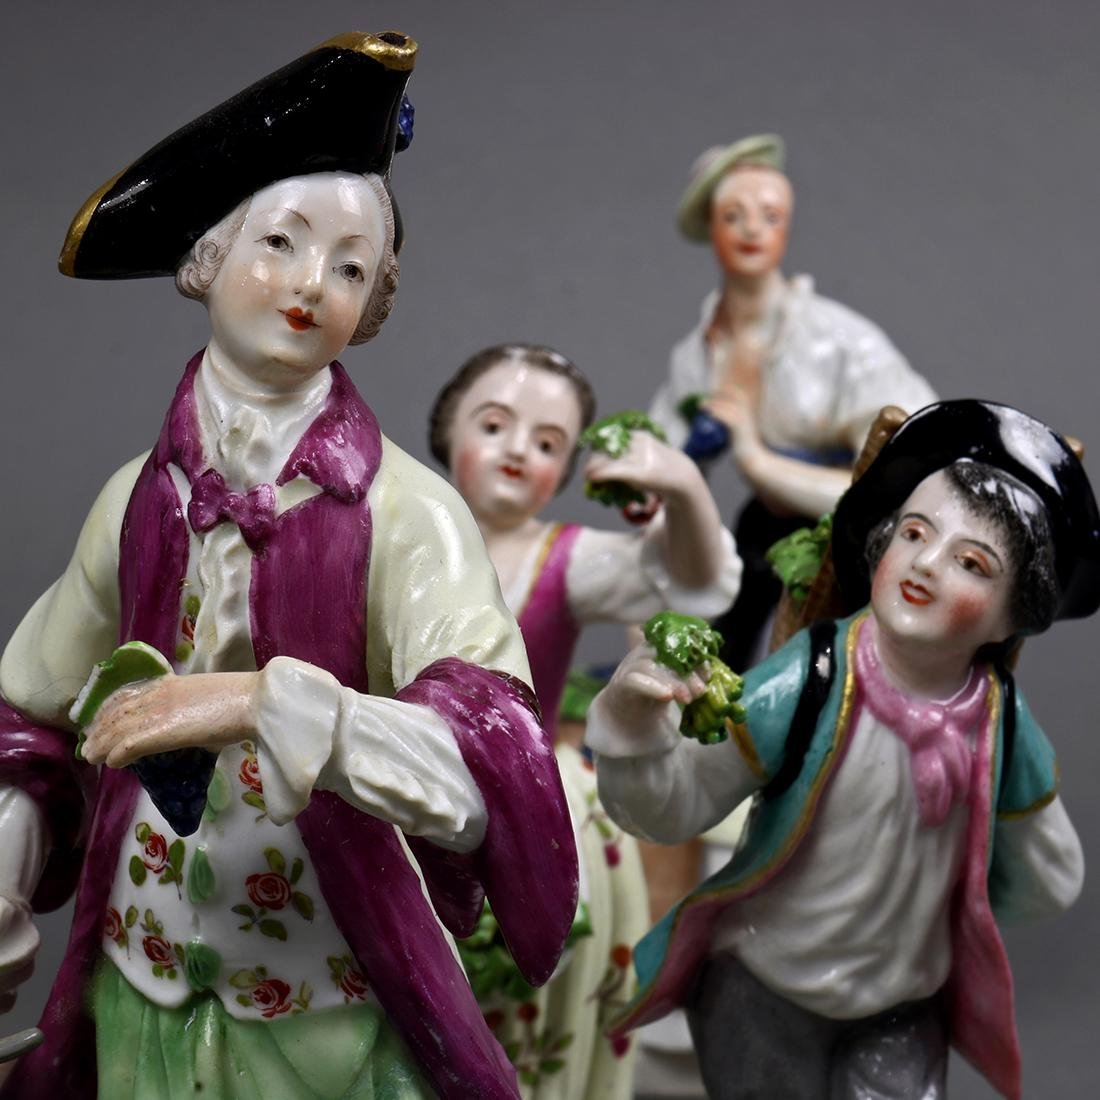 (lot of 4) Group of Continental porcelain figural